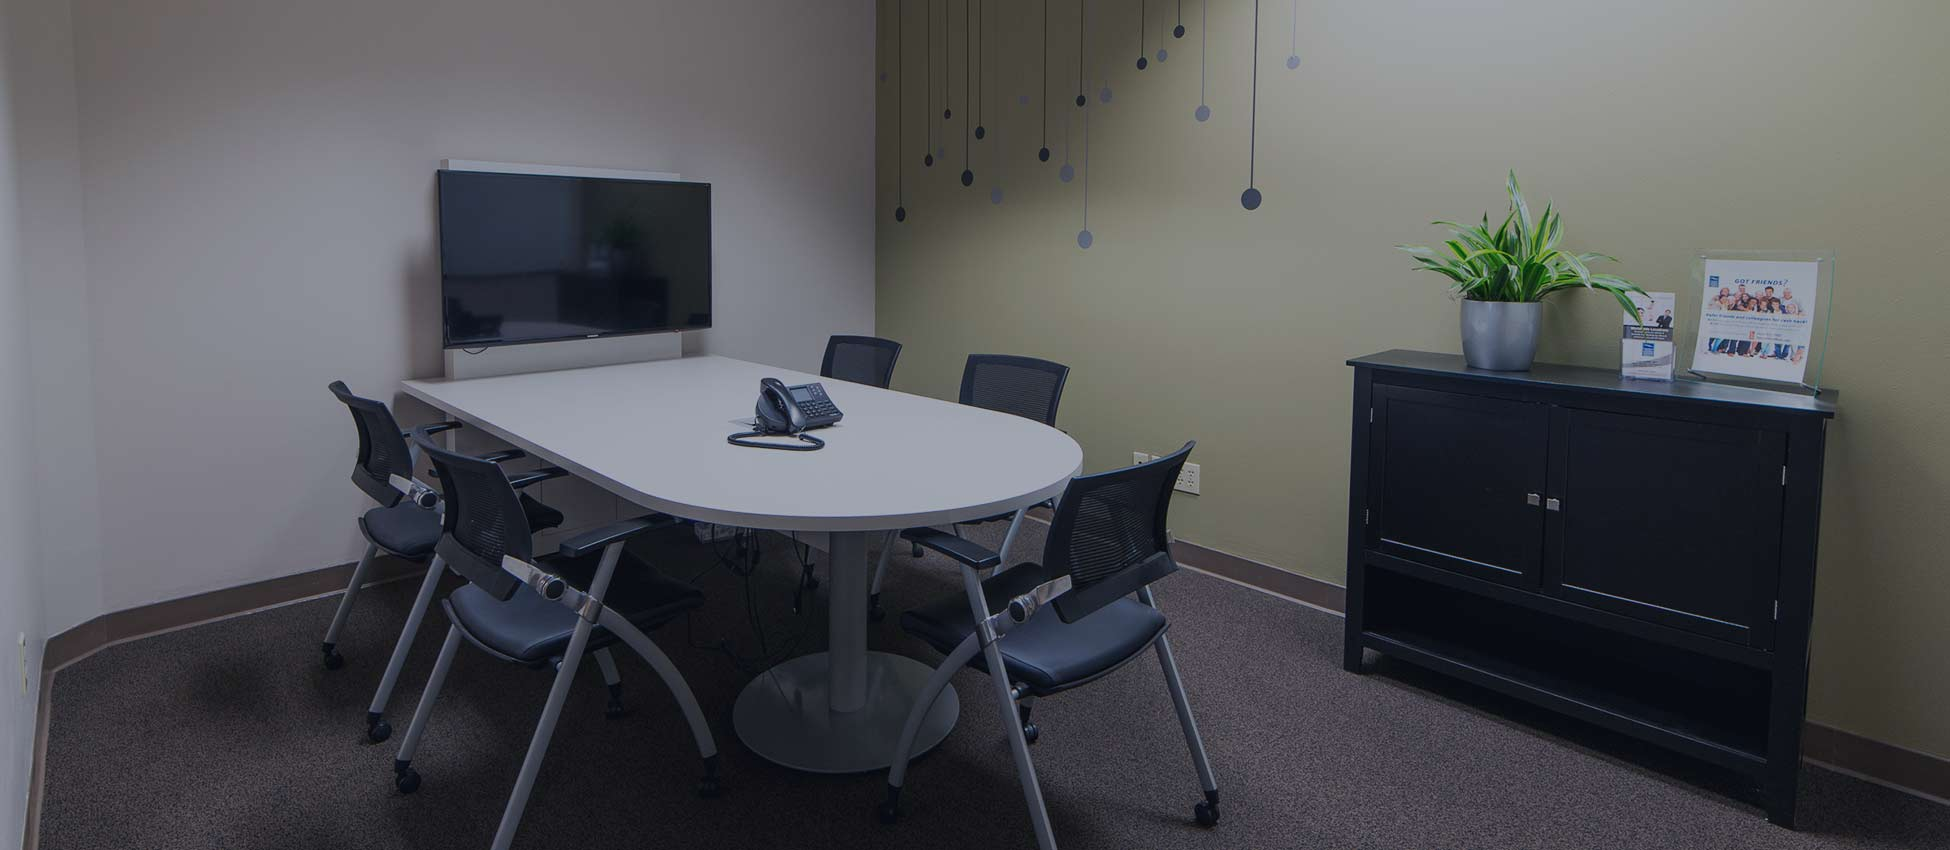 pacific-workplaces-pleasant-hill-office-space-media-room